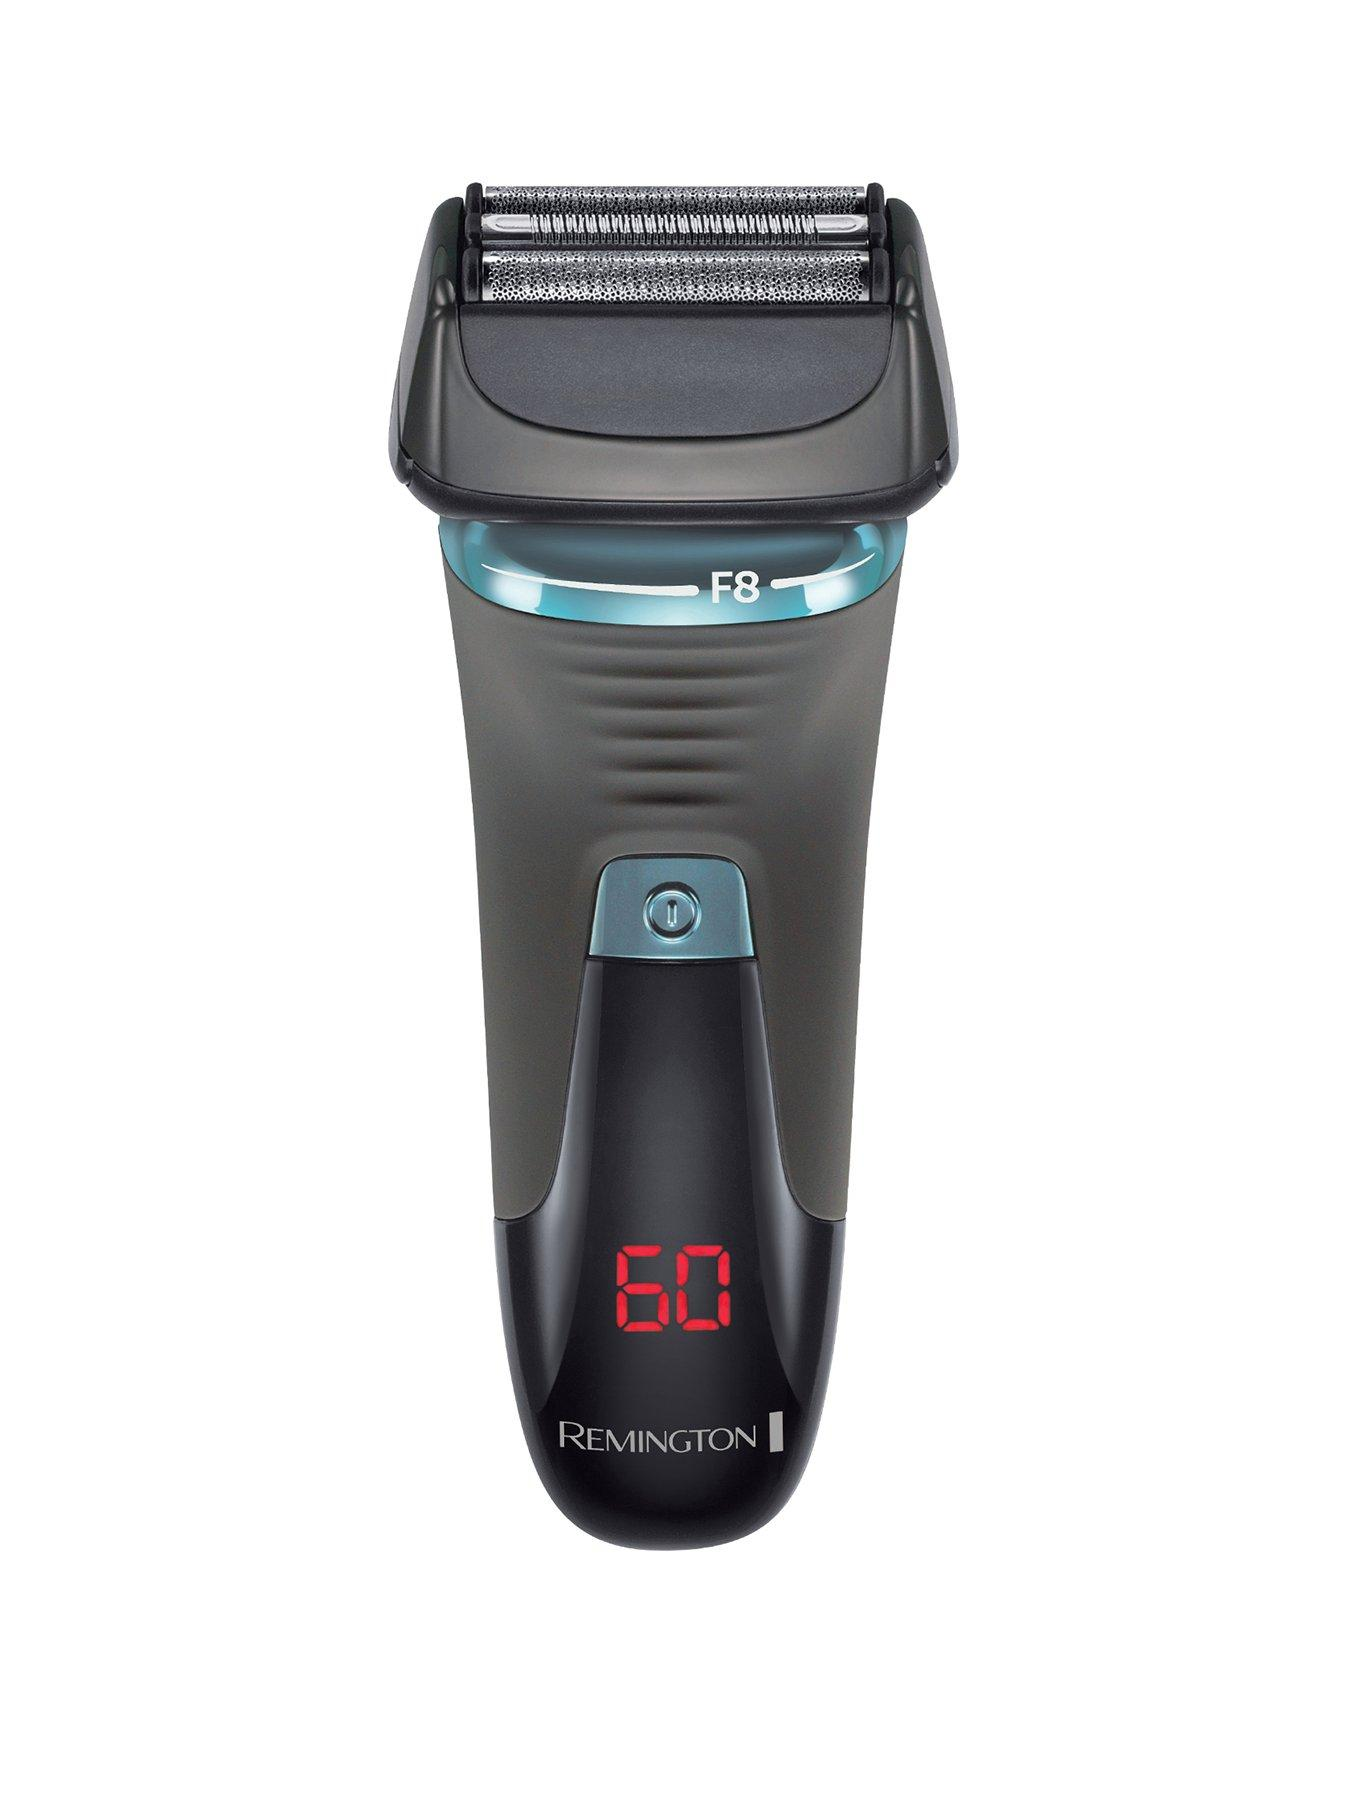 REMINGTON bkt4000 Smooth /& Silky Cordless Wet /& Dry Trimmer BIANCO-NUOVO